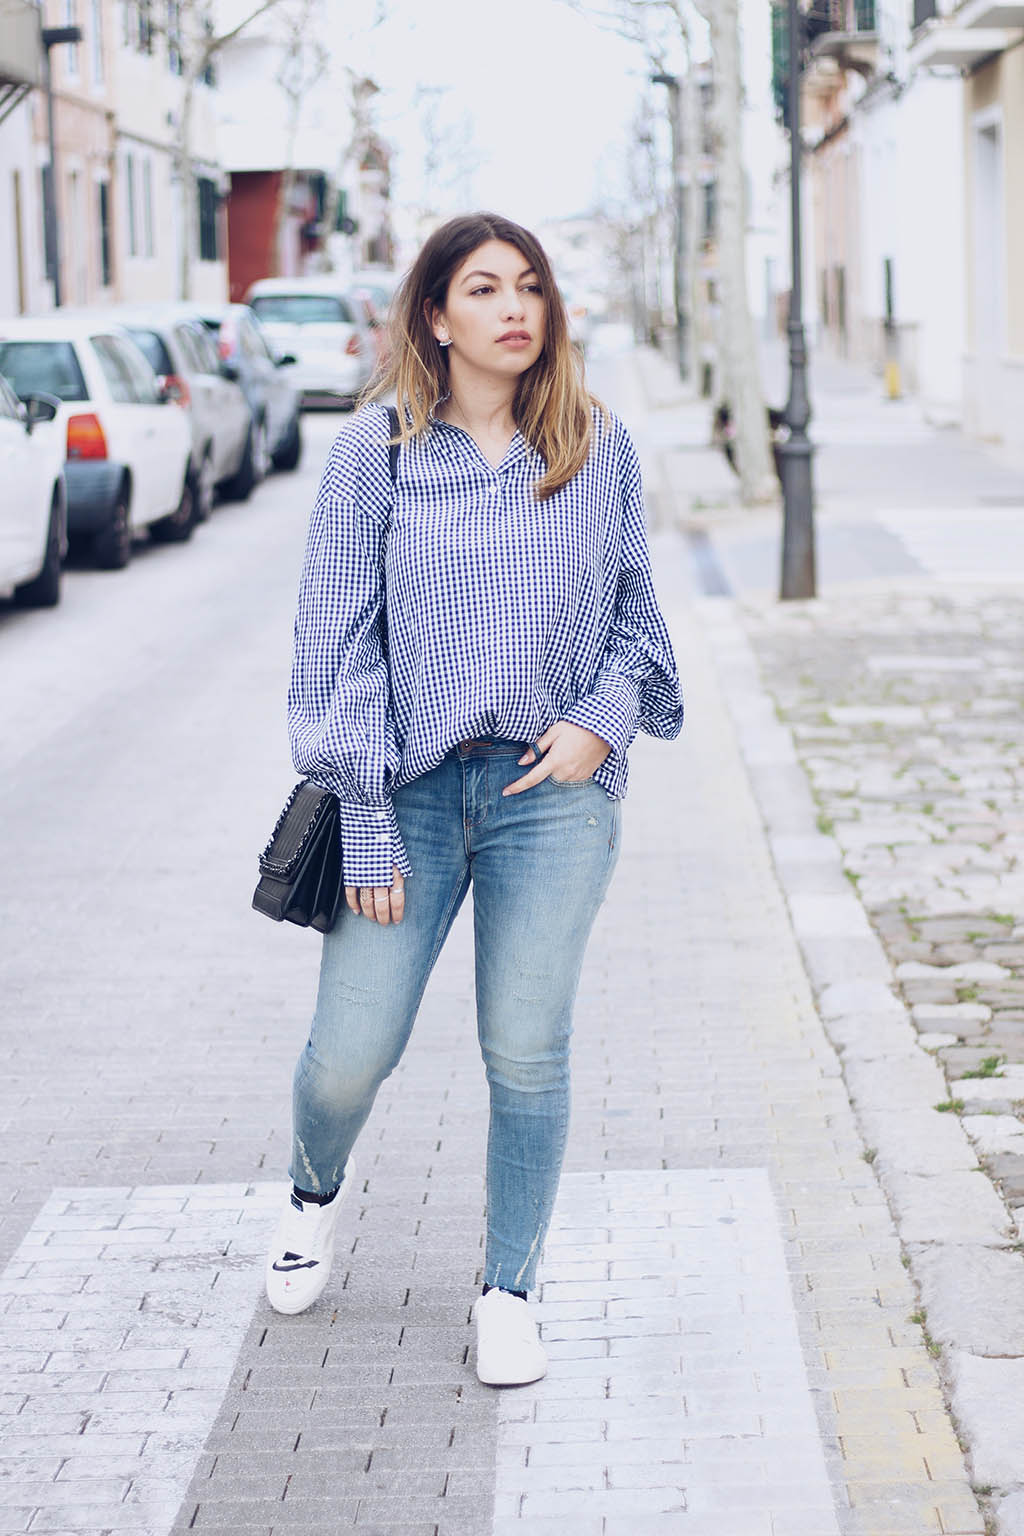 blog-fashion-mode-style-original-yourself-avis-conseil-streetstyle-isnpiration